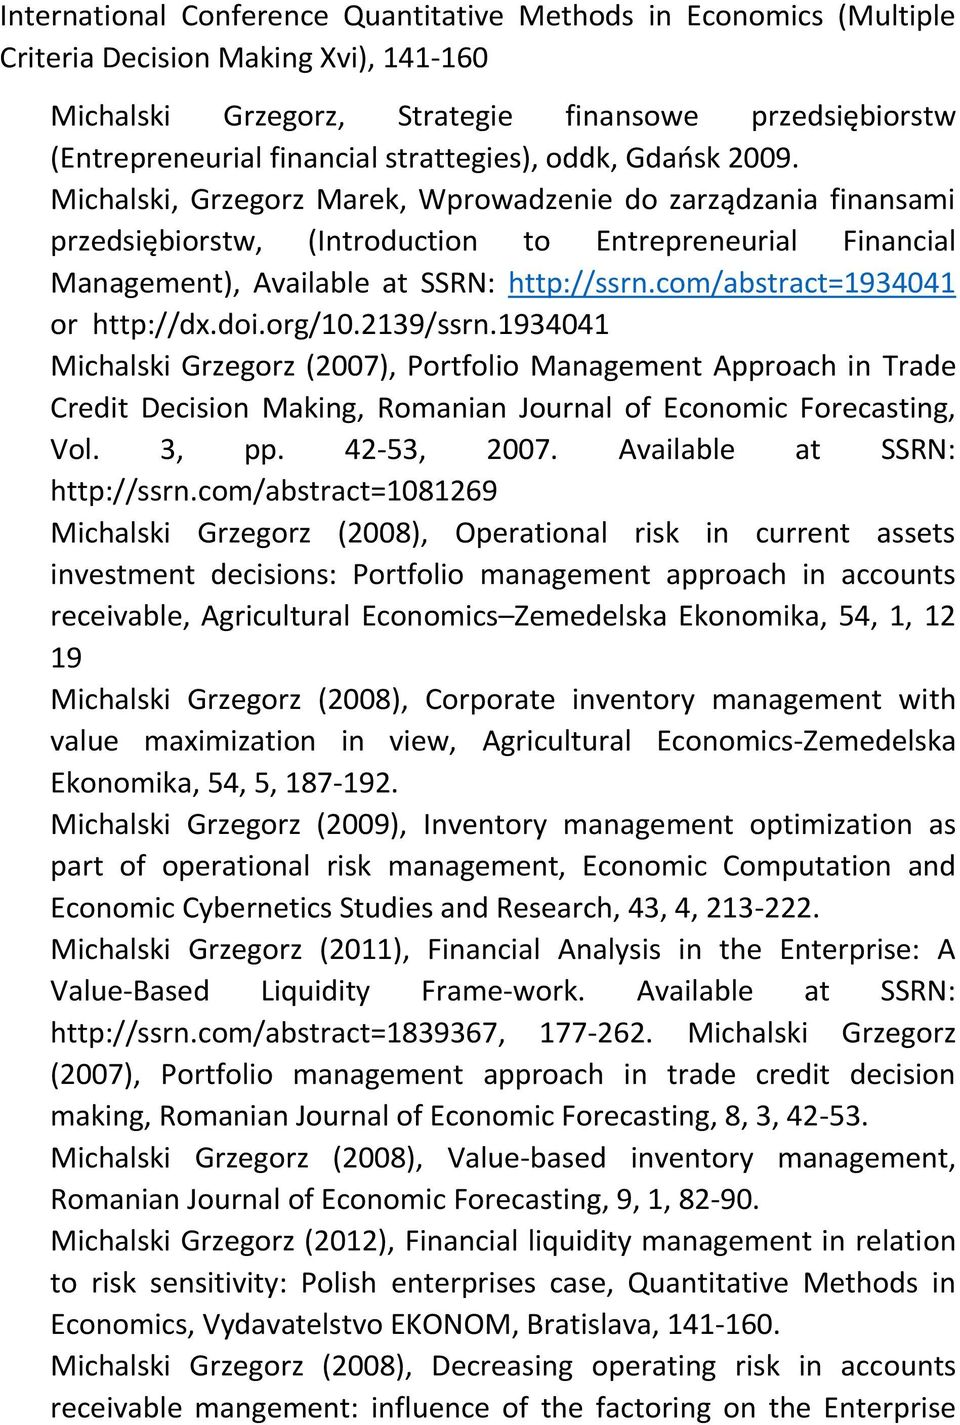 Michalski, Grzegorz Marek, Wprowadzenie do zarządzania finansami przedsiębiorstw, (Introduction to Entrepreneurial Financial Management), Available at SSRN: http://ssrn.